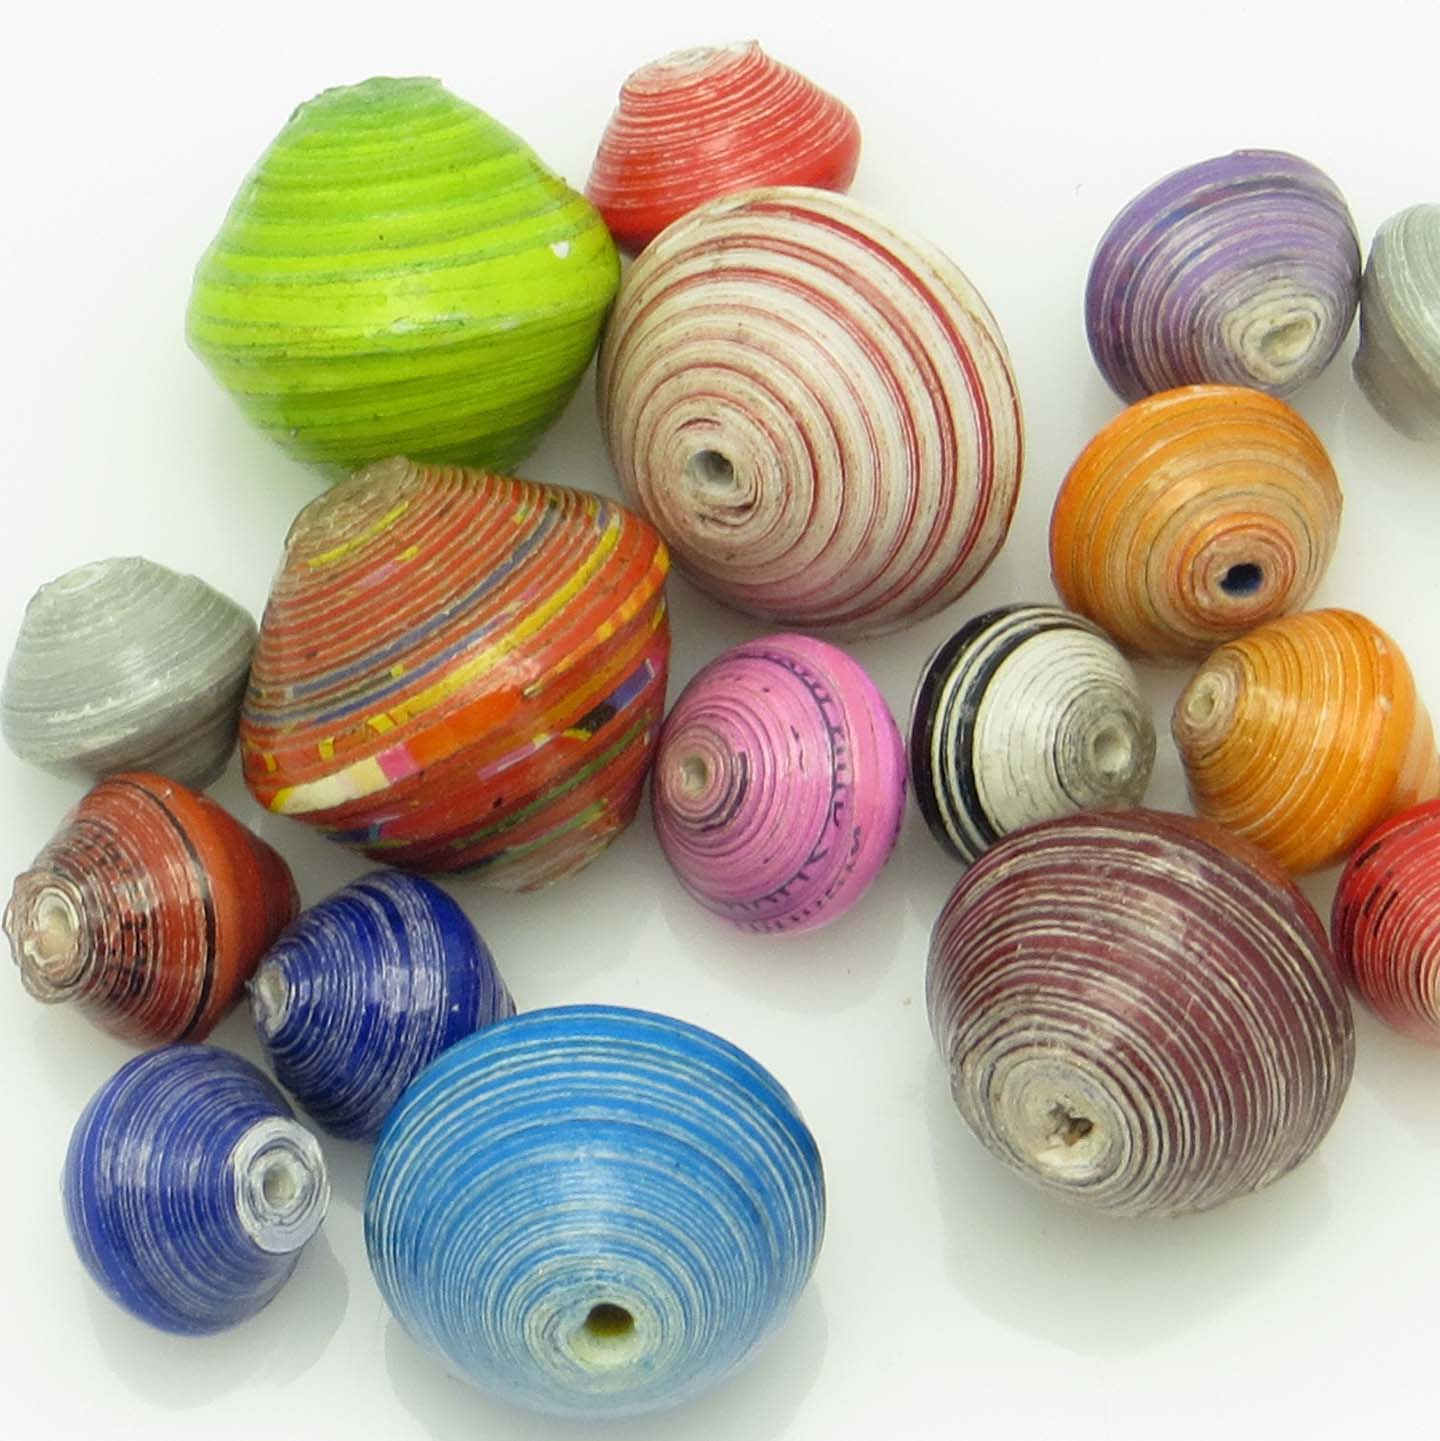 Micro beads for crafting - Gigantic Round Beads